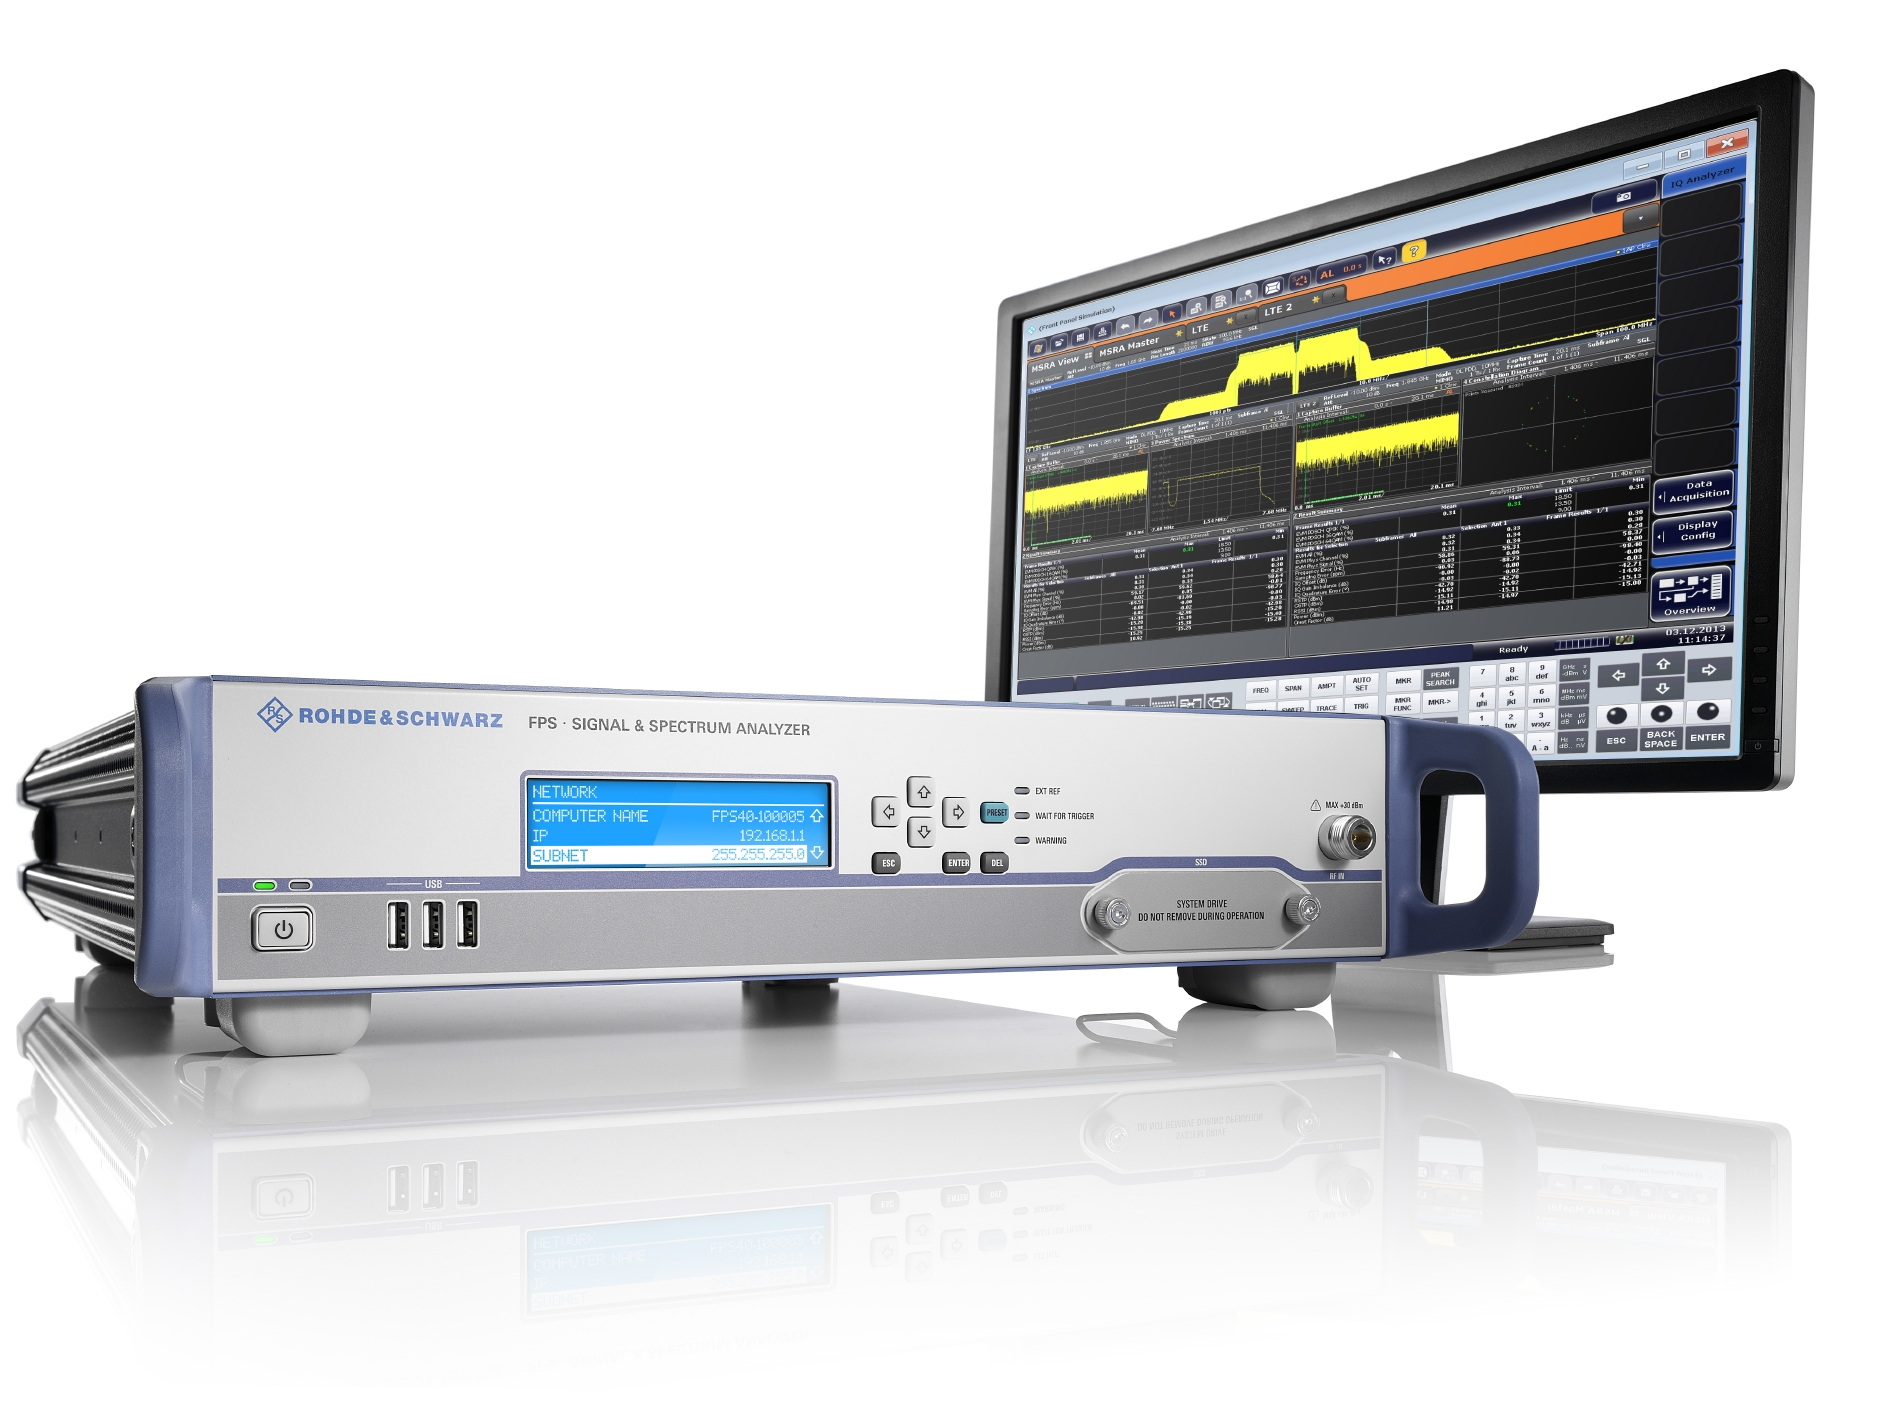 Signal and spectrum analyser delivers faster measurement speeds